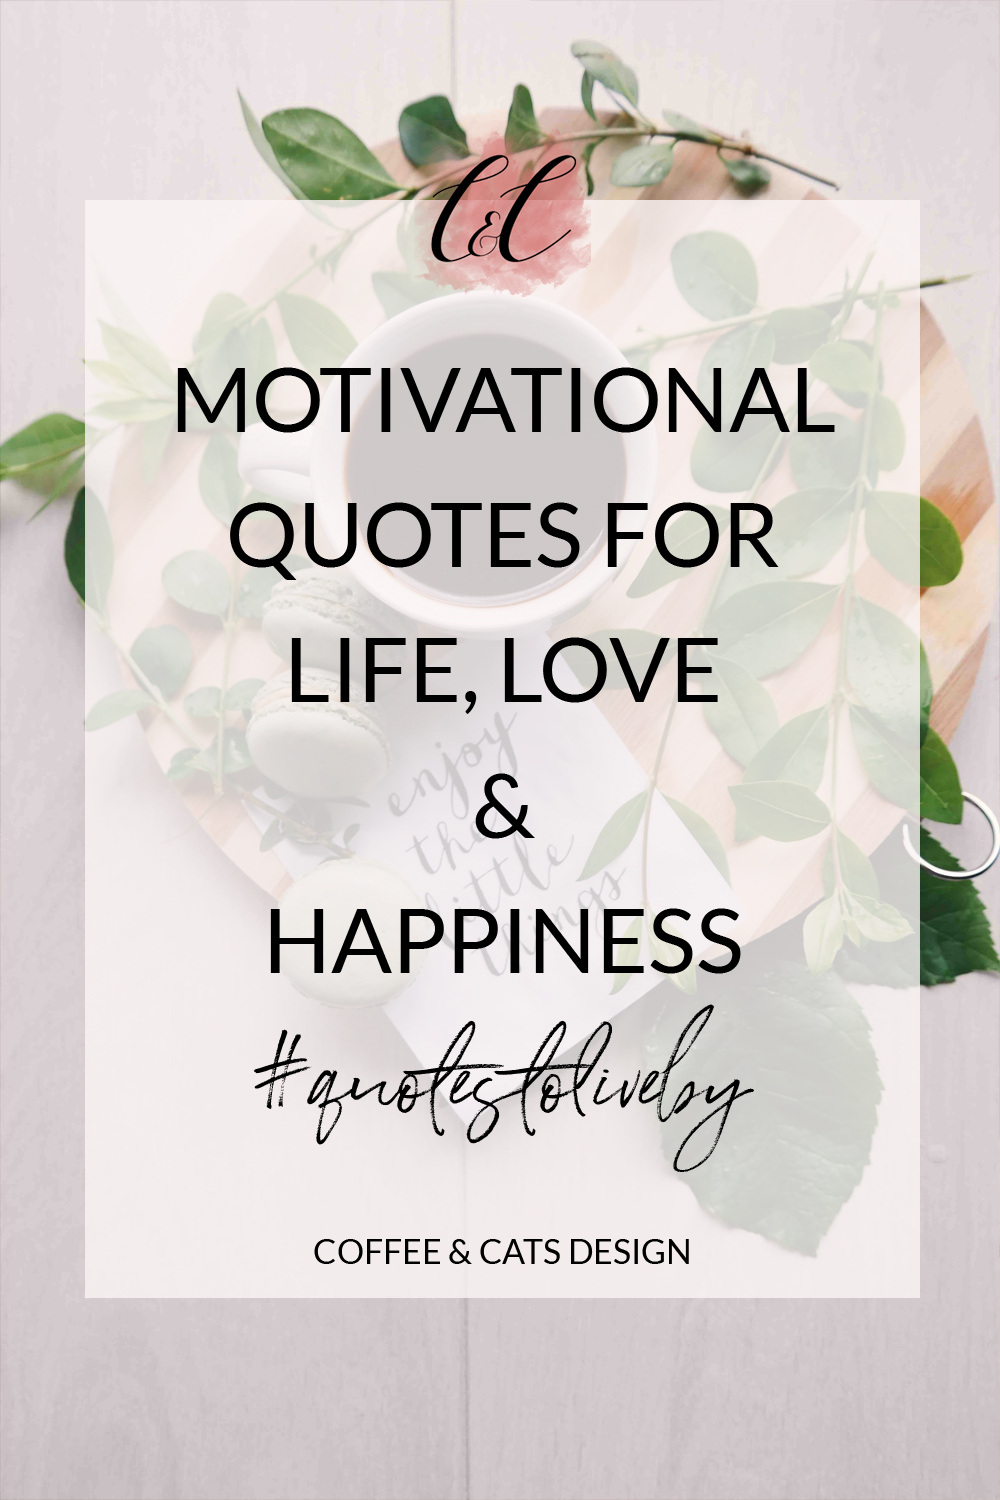 Motivational Quotes For Life Love And Happiness Coffee Cats Design